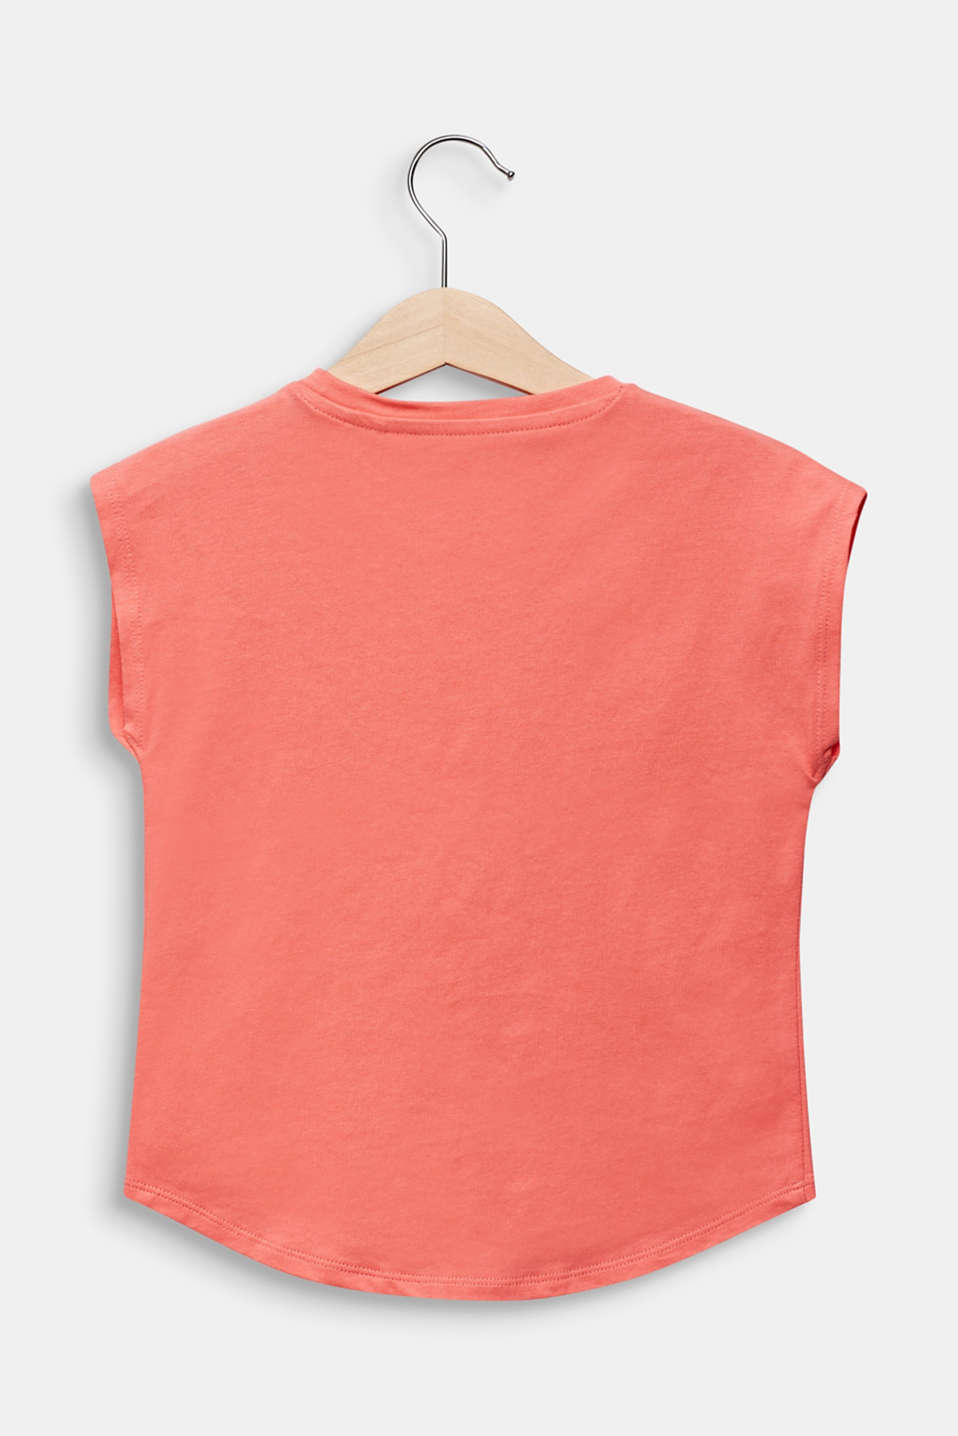 T-shirt with sequins, 100% cotton, CORAL, detail image number 1